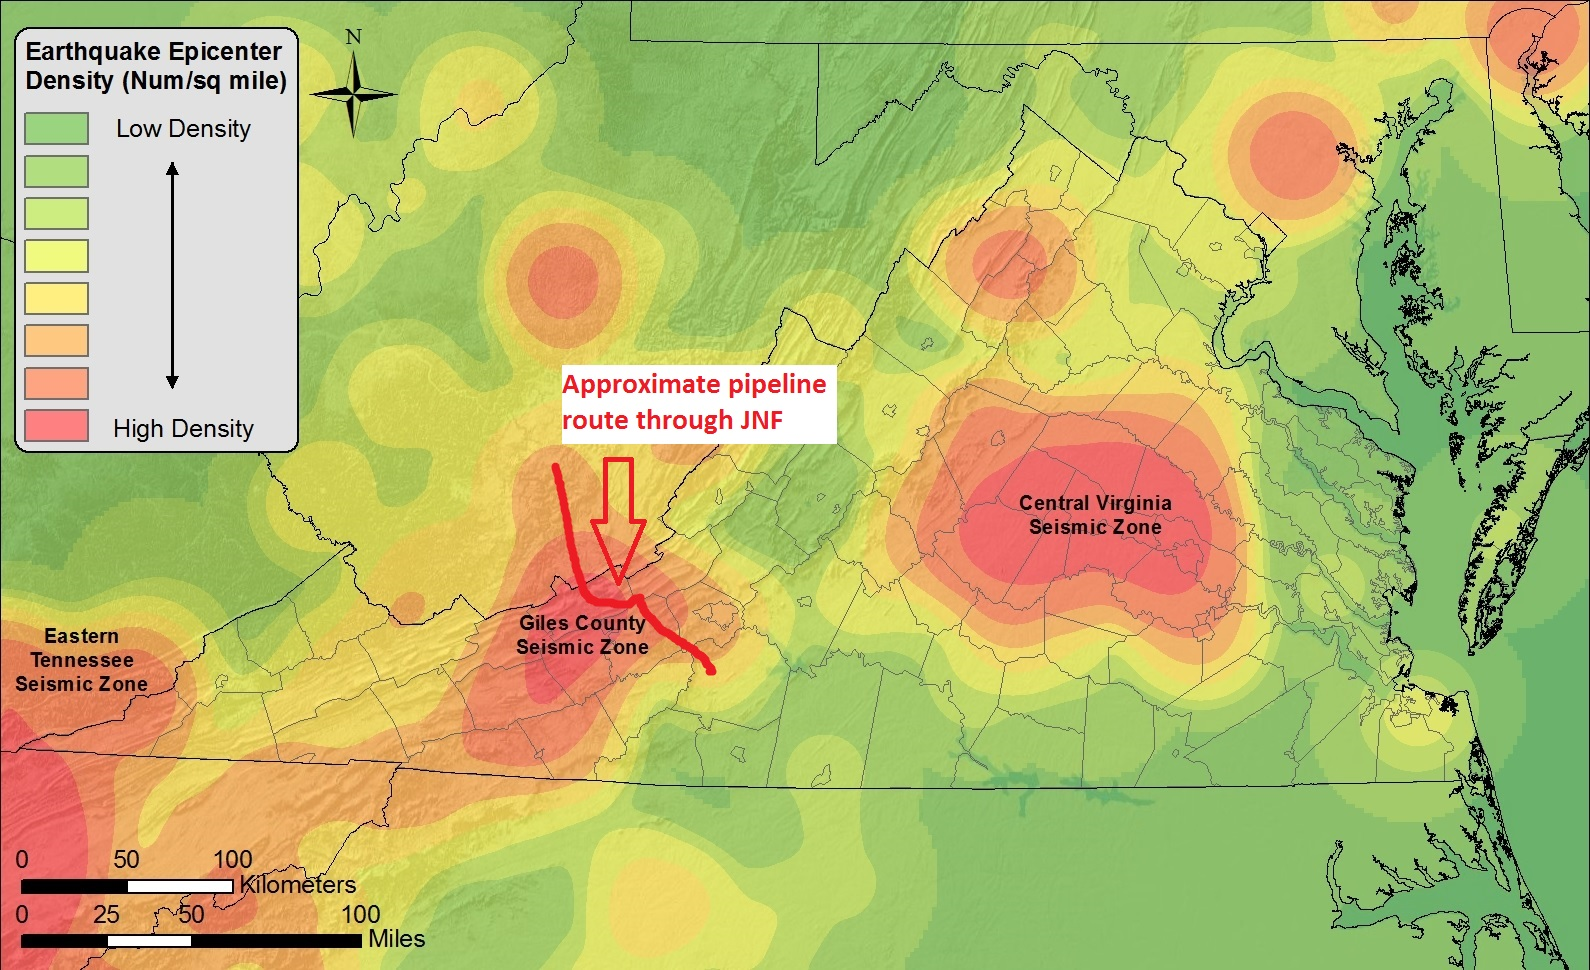 Virginia Seismic Zone and Proposed Mountain Valley Pipeline route